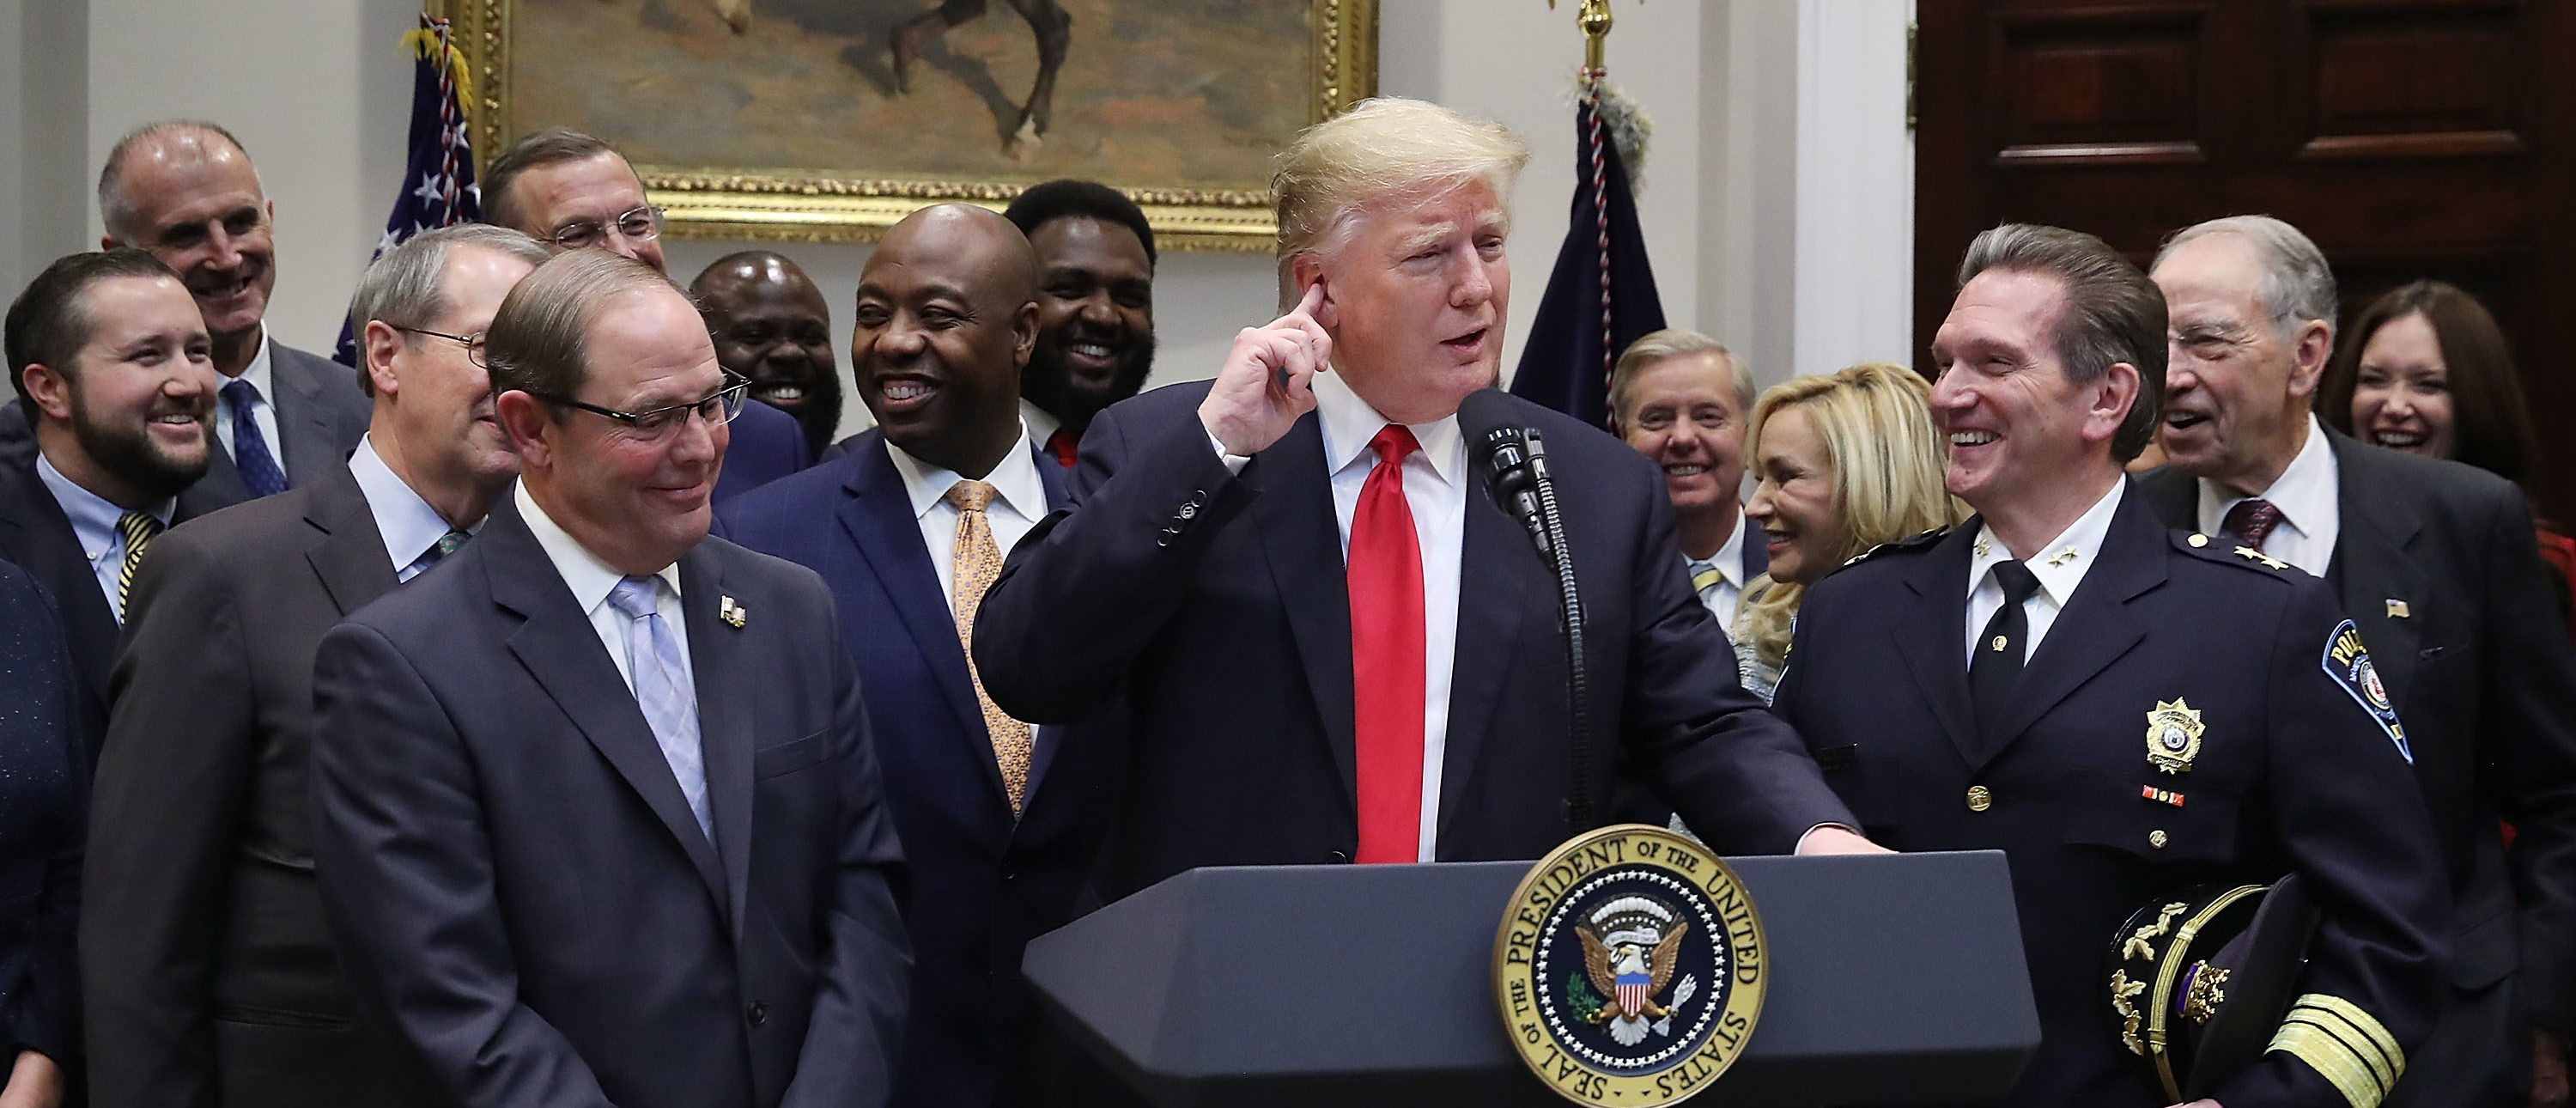 "WASHINGTON, DC - NOVEMBER 14: U.S. President Donald Trump makes an announcement regarding the ""First Step Act"", prison reform bill, in the Roosevelt Room at the White House on November 14, 2018 in Washington, DC. (Photo by Mark Wilson/Getty Images)"